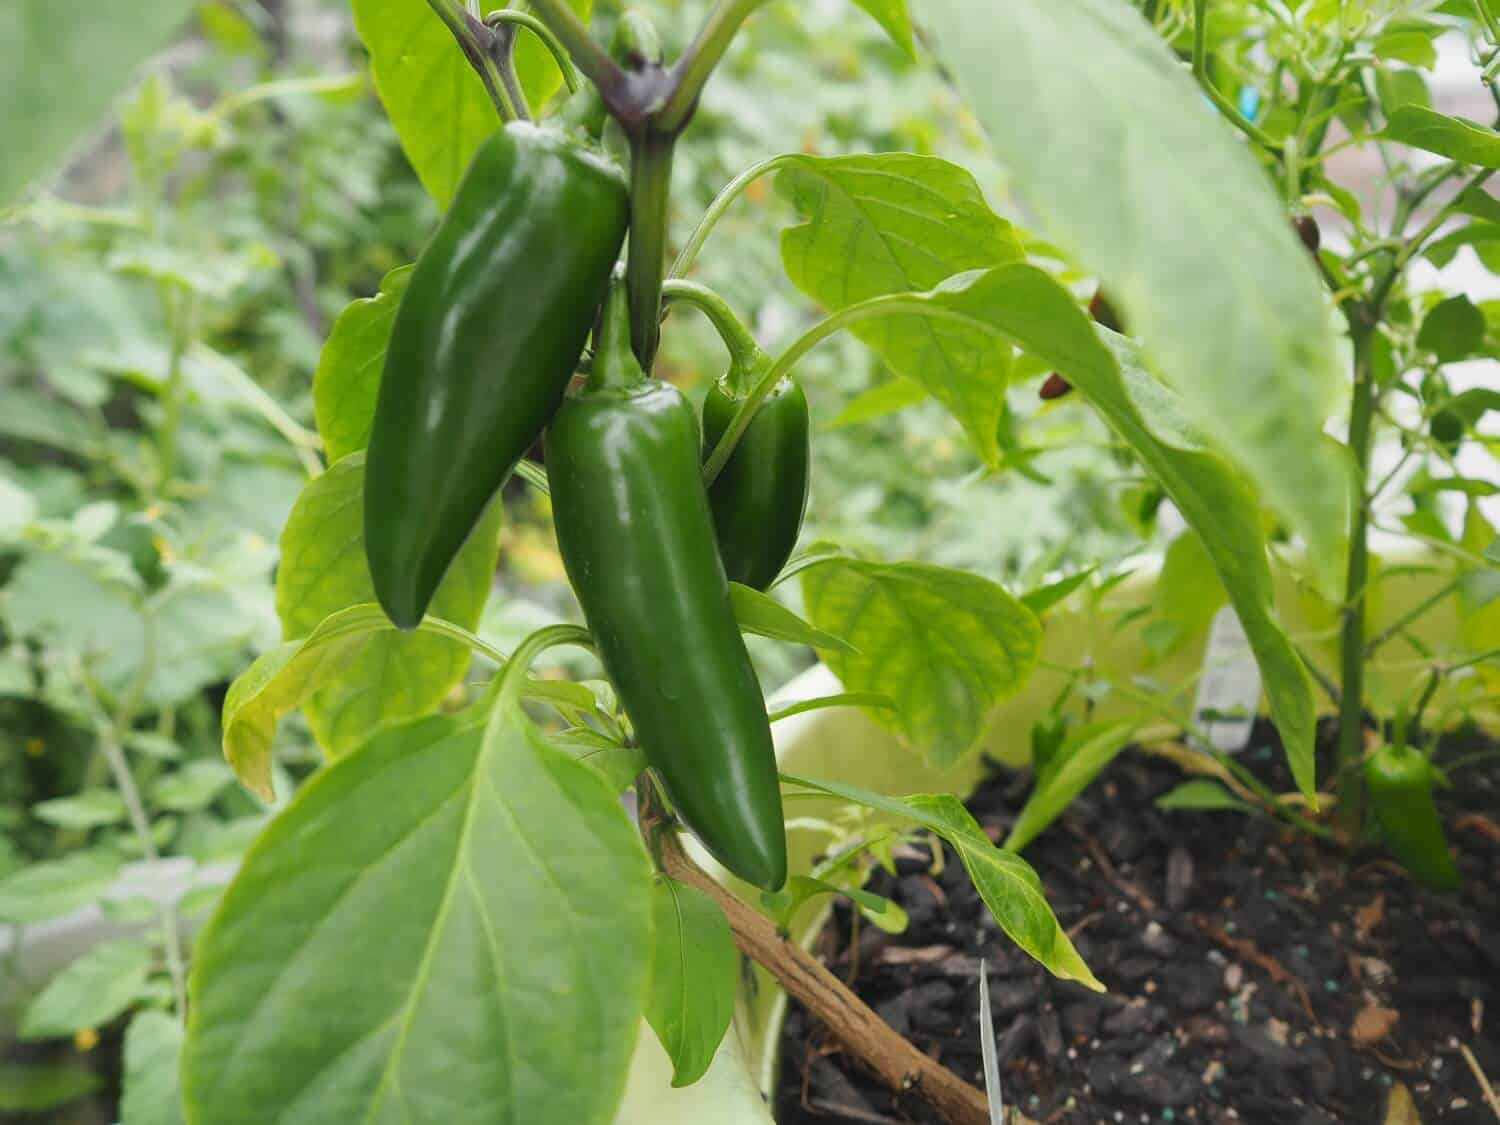 Jalapeno Plant Care: How to Grow and Care for Jalapenos